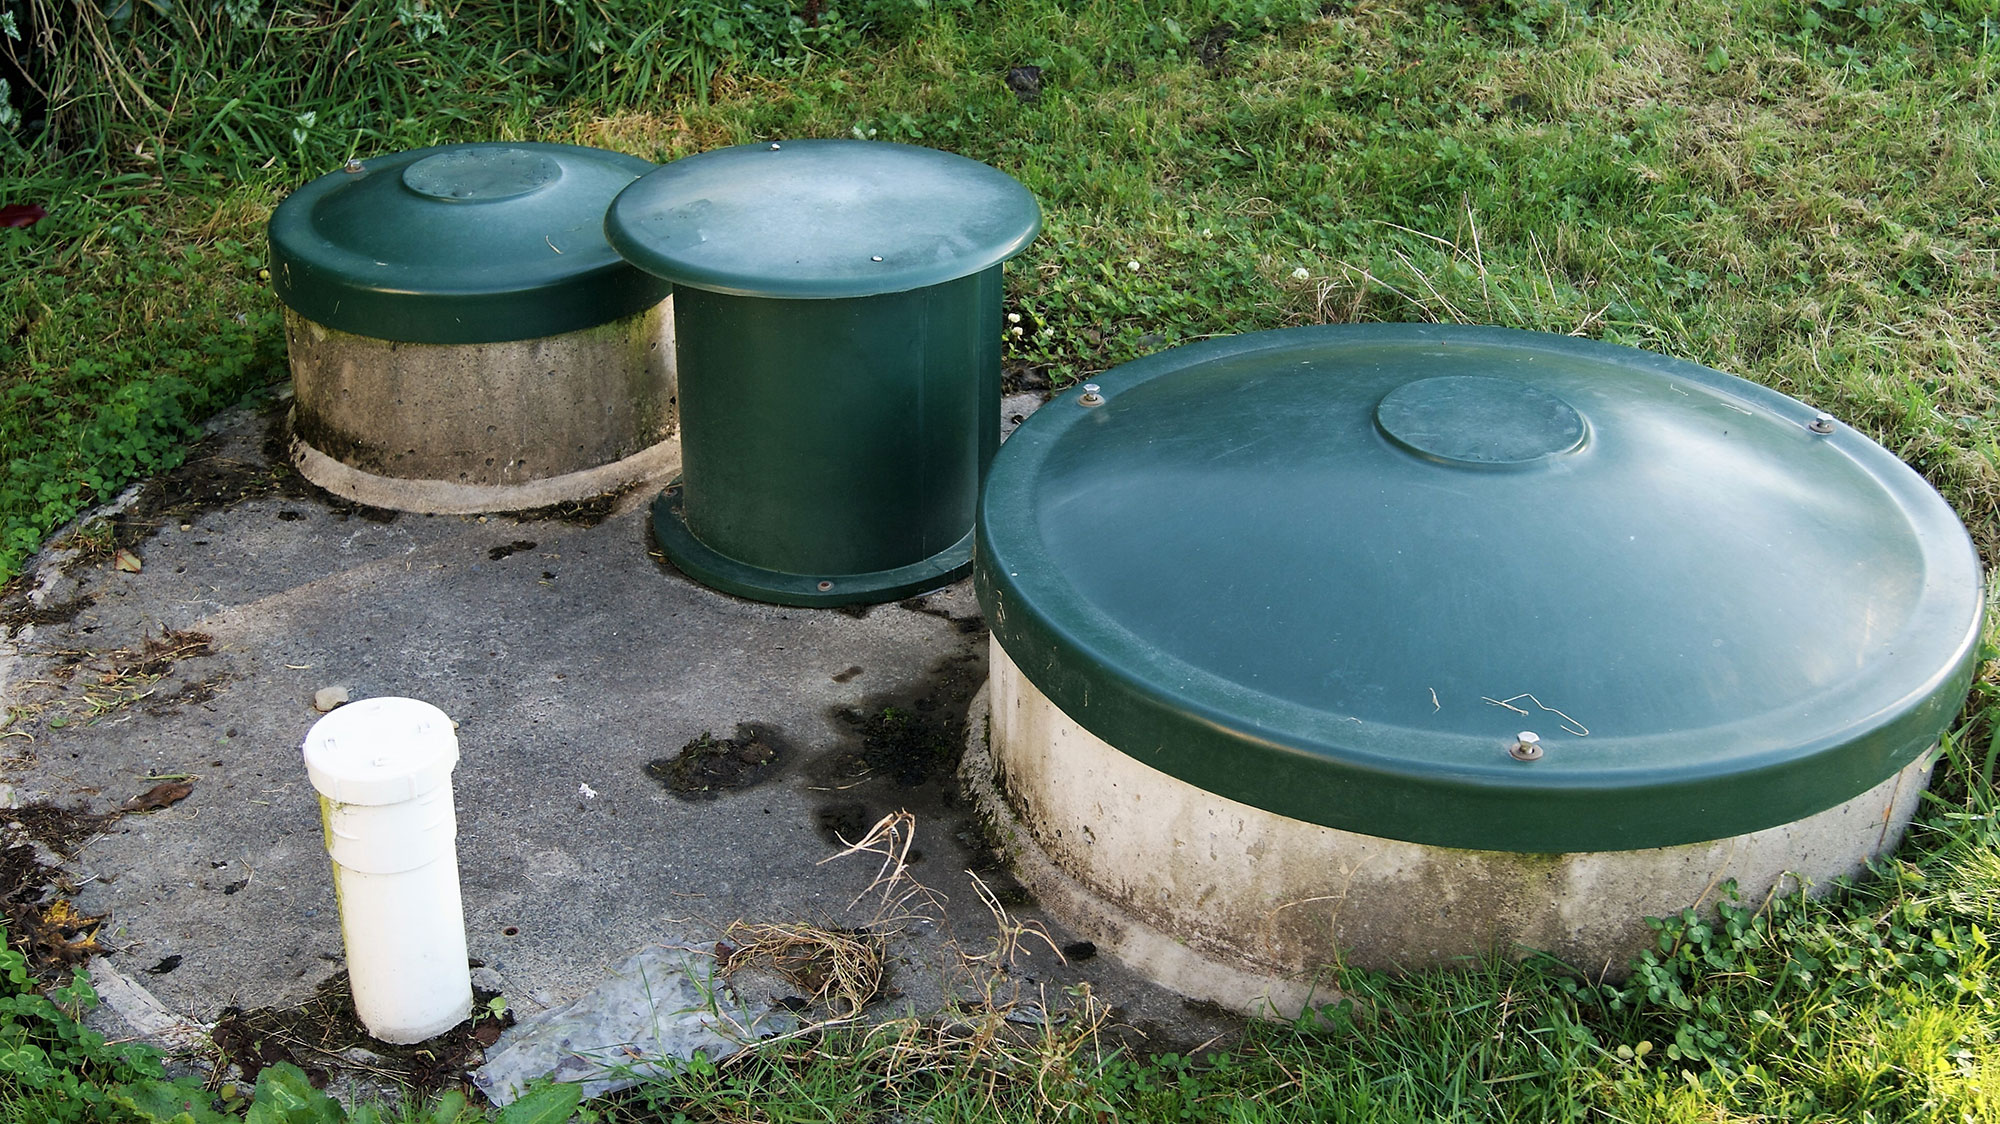 How often should Septic be pumped out